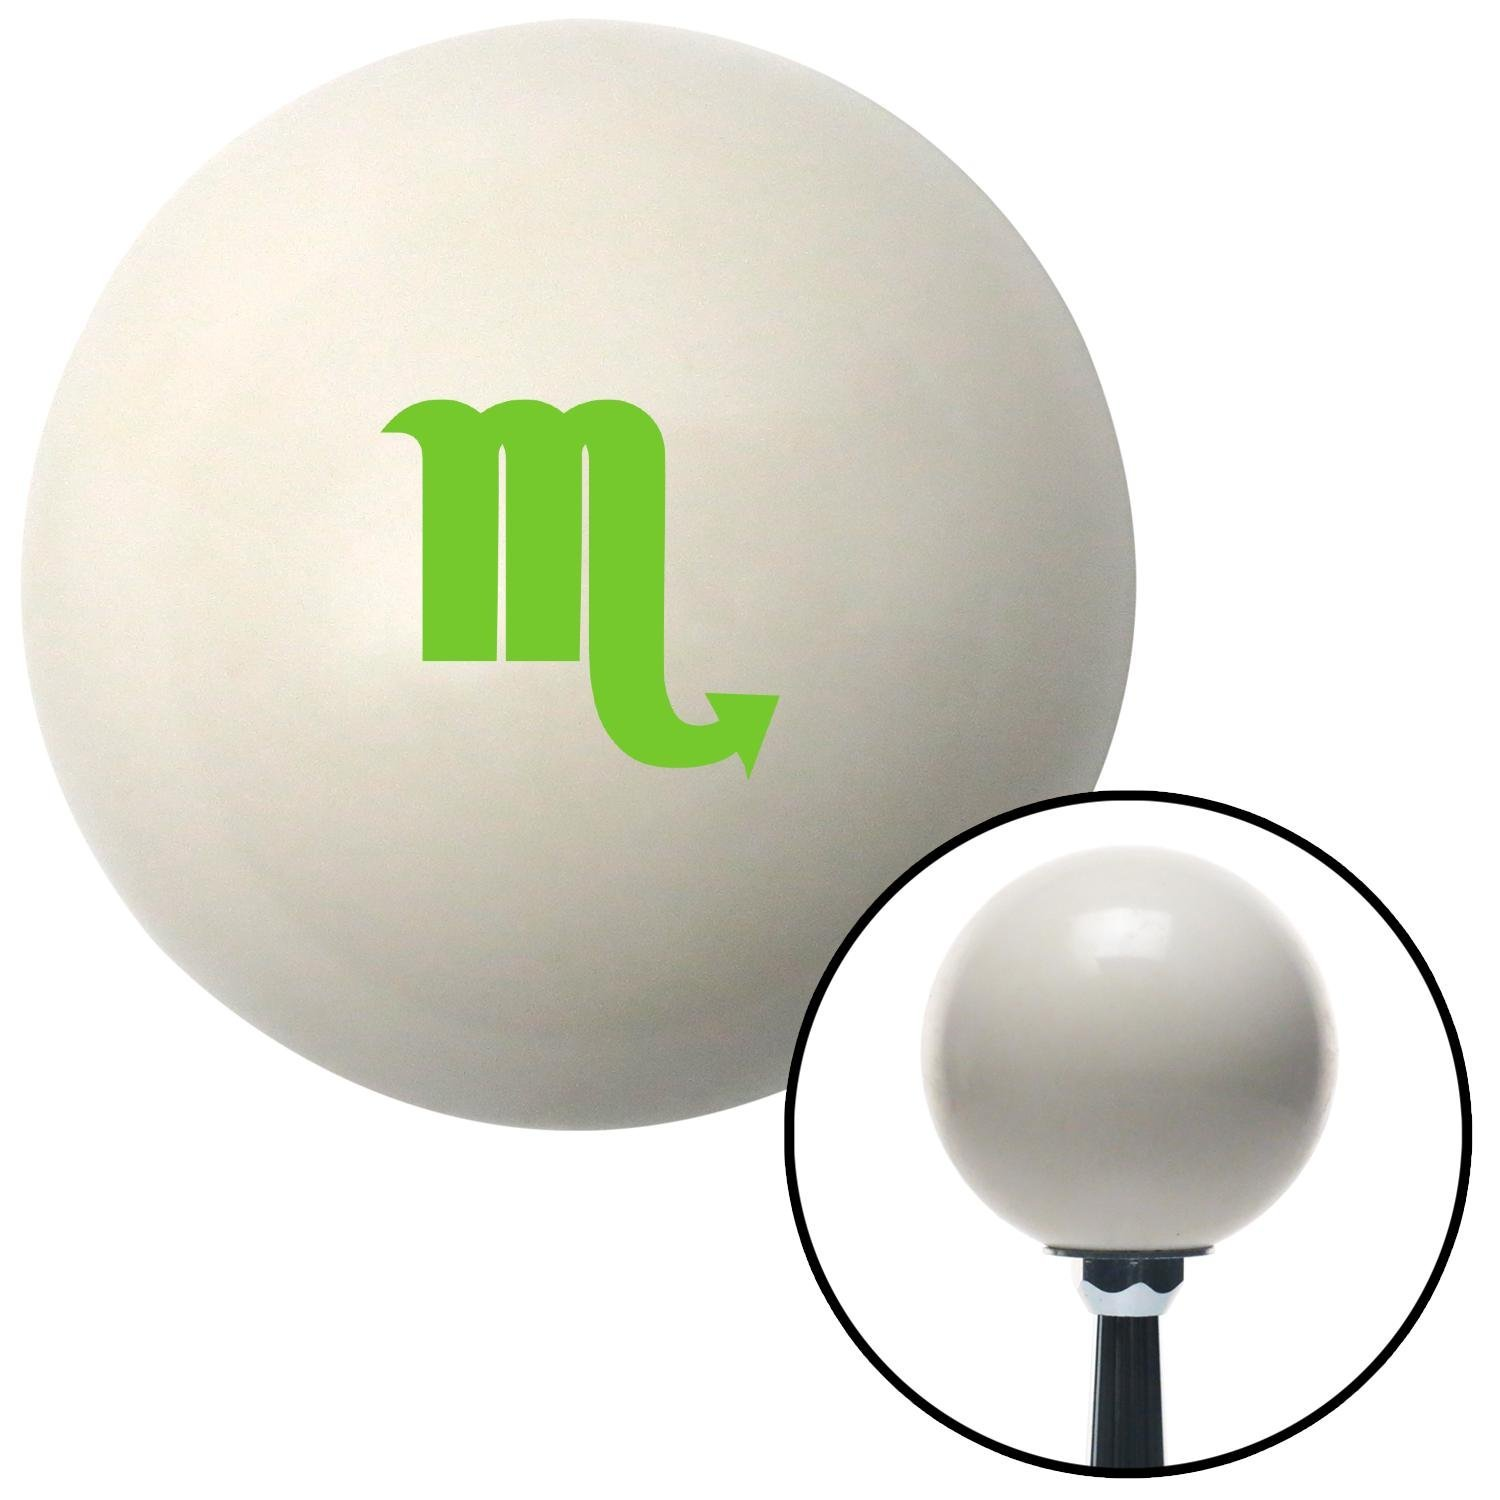 ASCSNX1590267 Green Scorpio Ivory with M16 x 1.5 Insert American Shifter 269235 Shift Knob